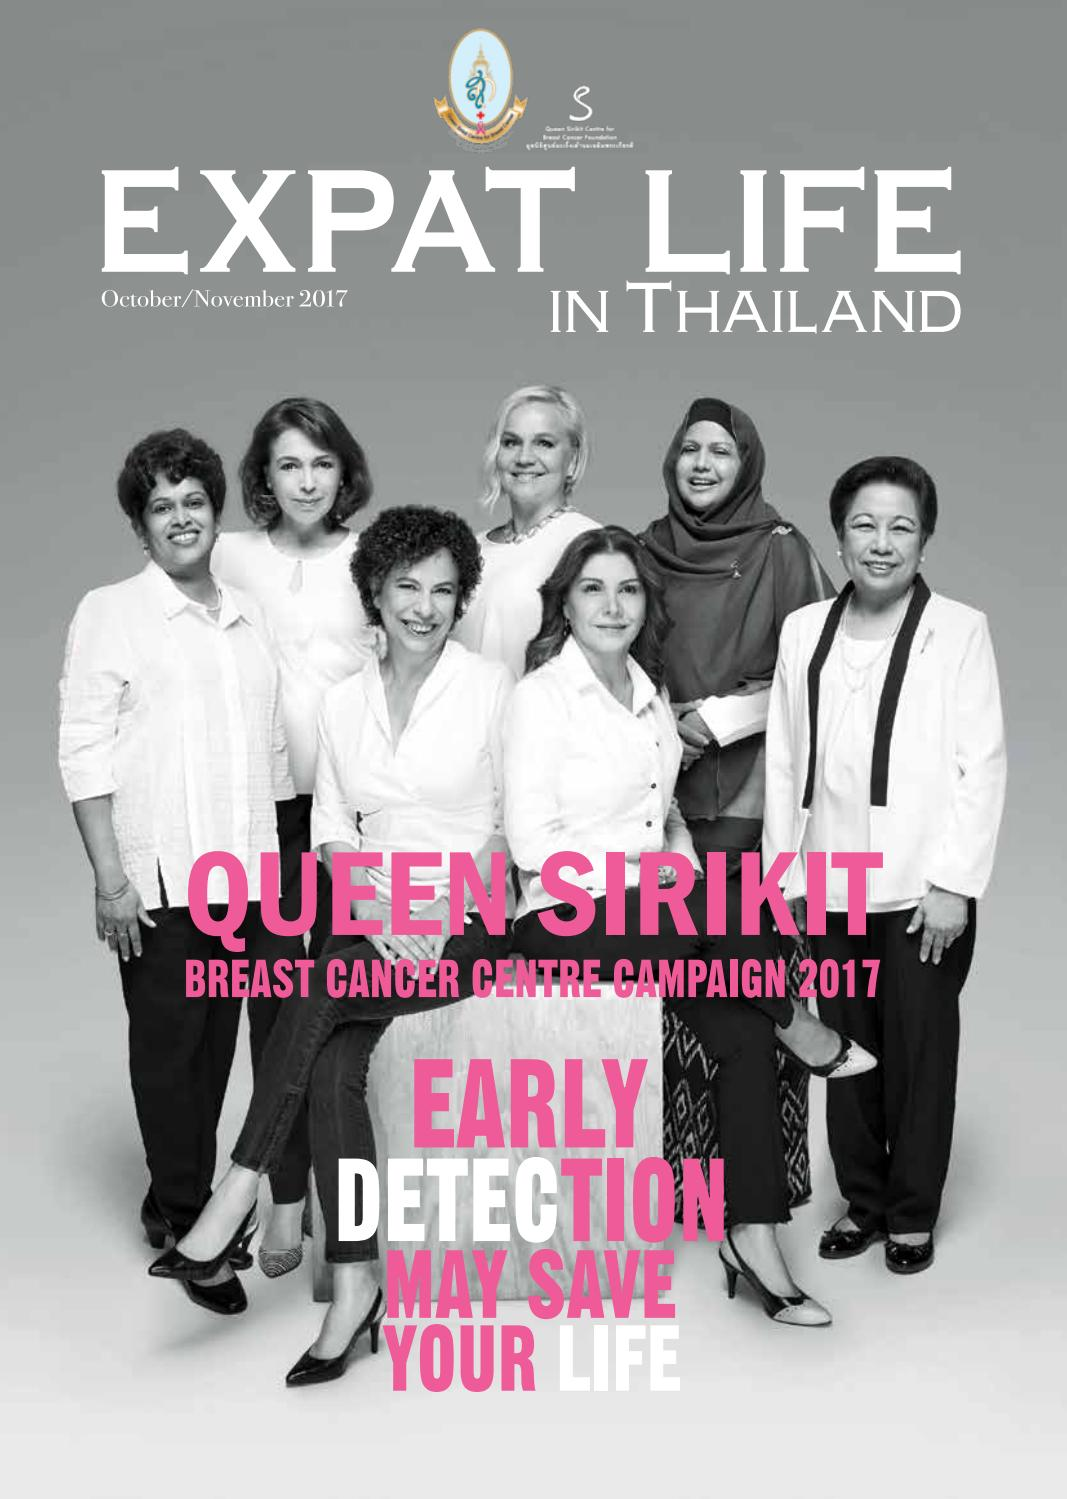 Expat Life in Thailand October/November 2017 by Expat Life - issuu